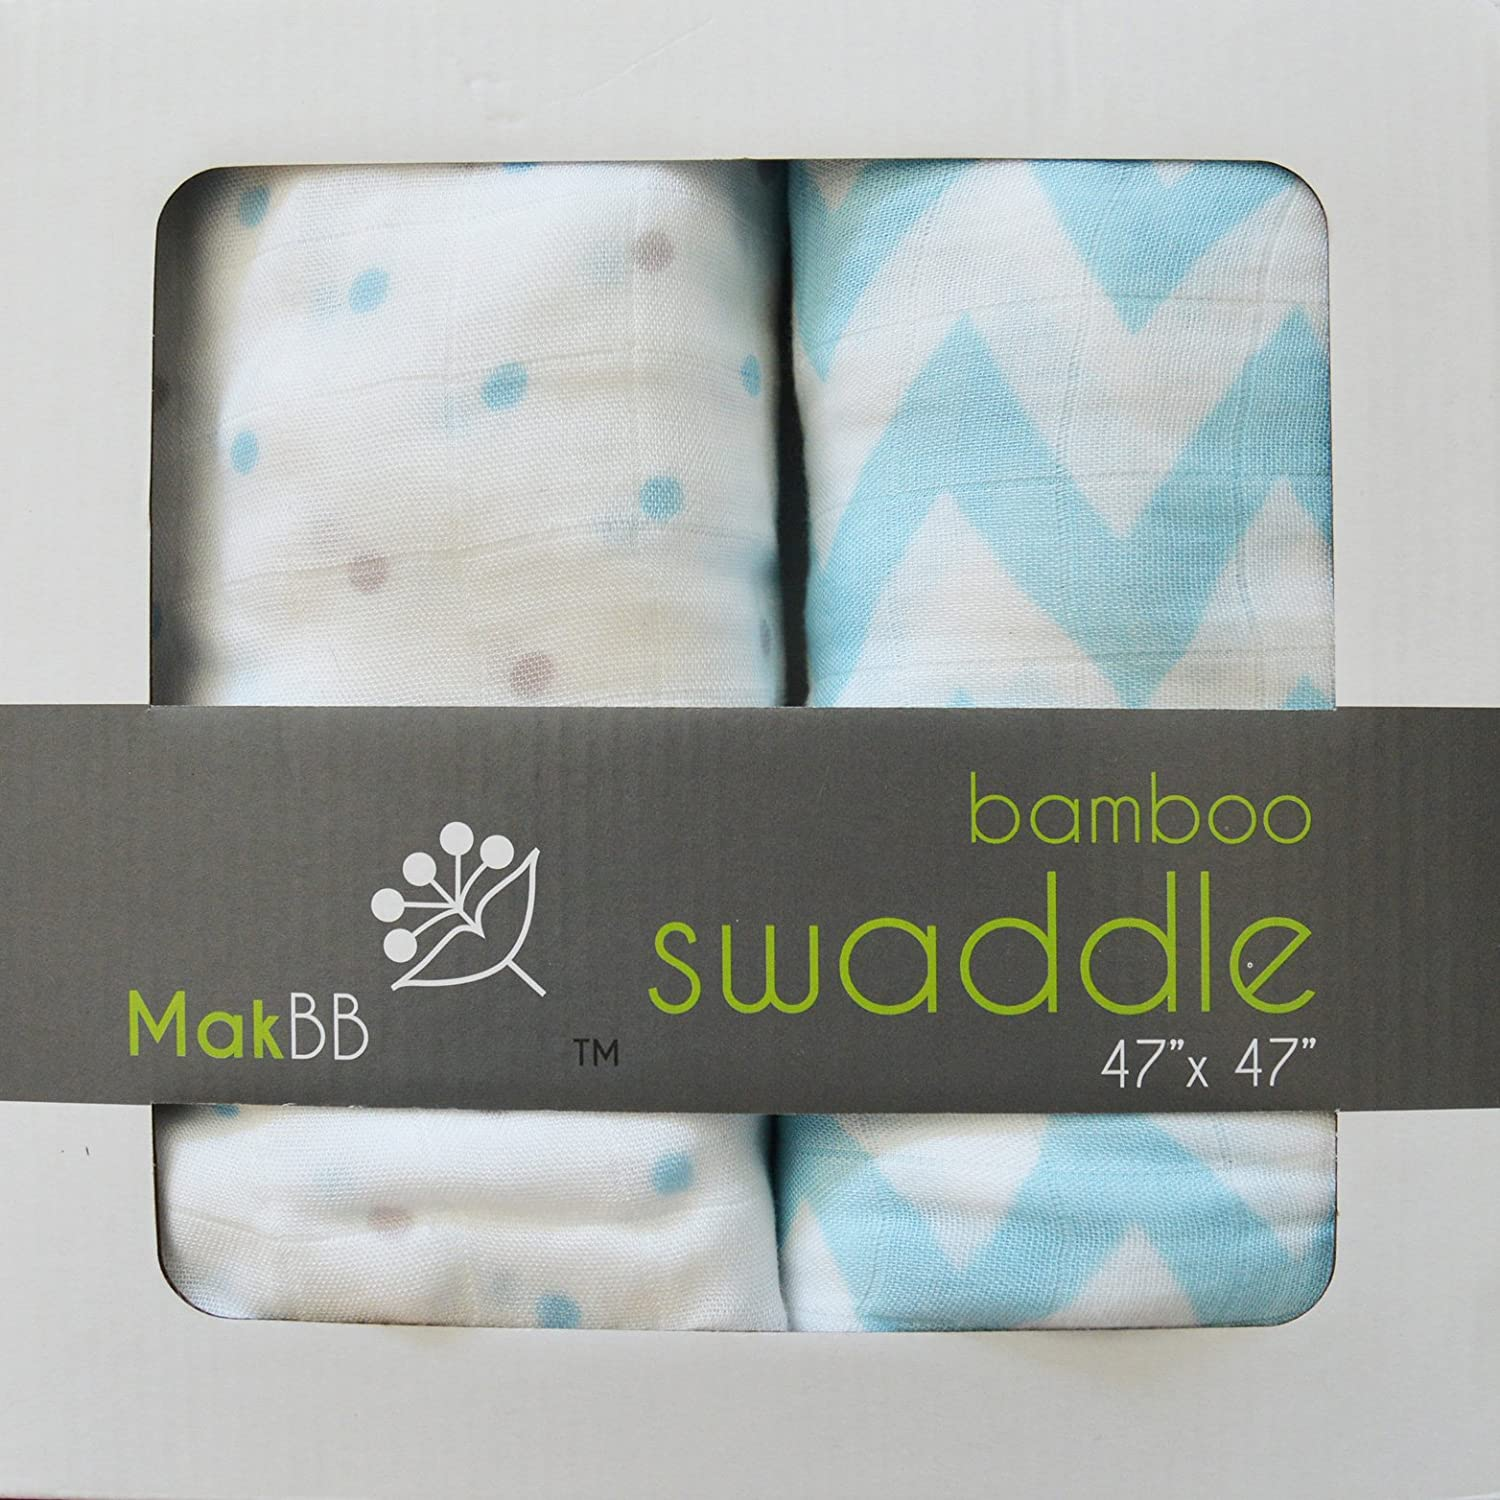 """MakBB Ultra Soft Baby Swaddle Blanket, Softest Bamboo Rayon, 2 Count 47"""" x 47"""" (Blue - Boy)."""